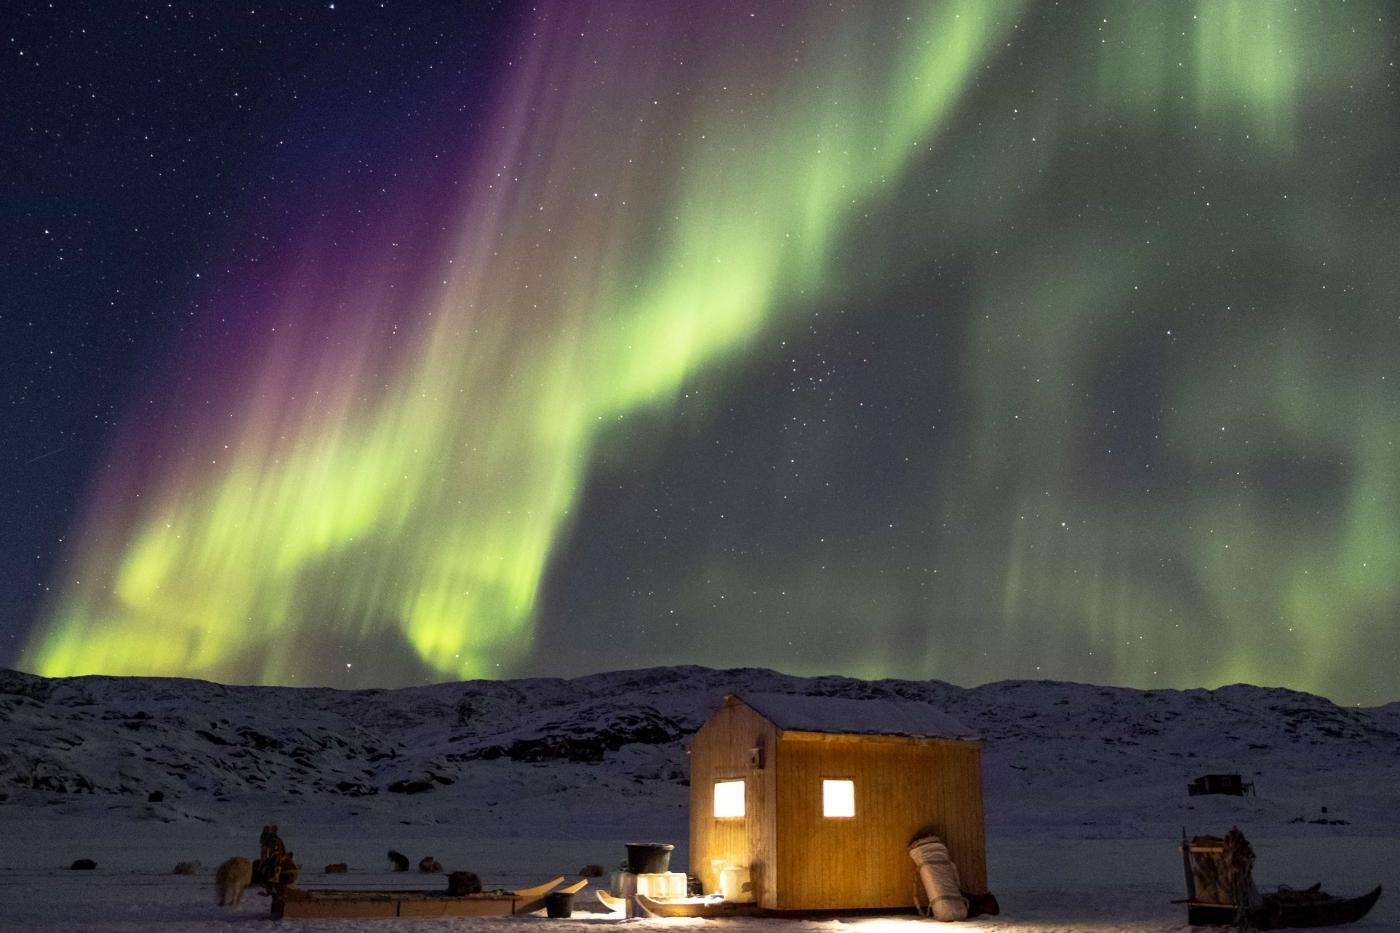 Northern lights with a small hut and sleddogs in the winter. Photo by Guide to Greenland